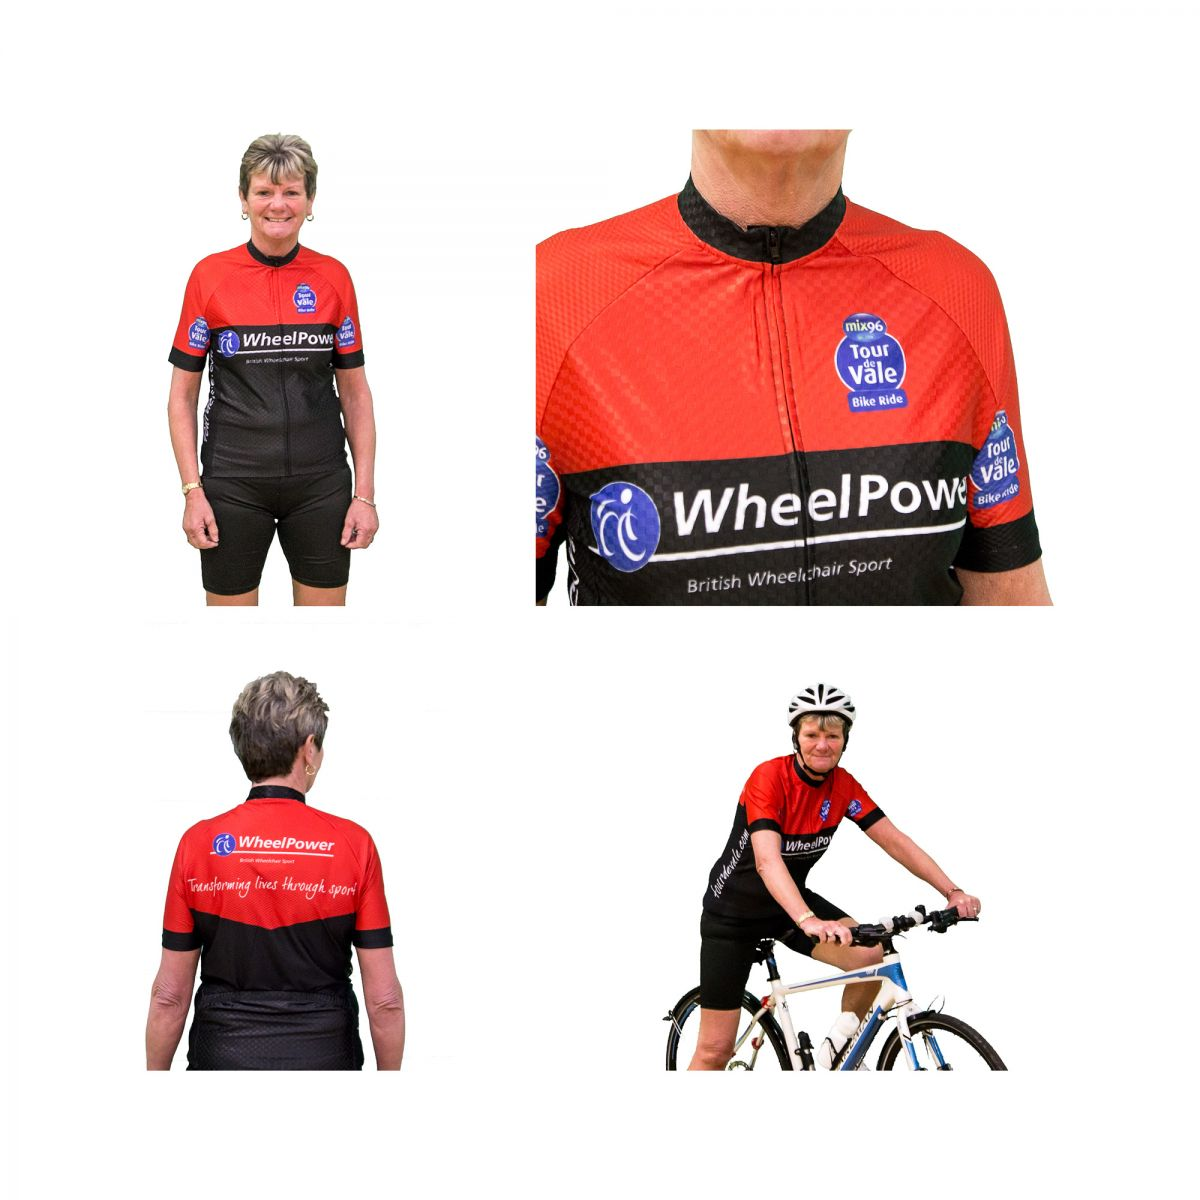 Views of new cycle jersey